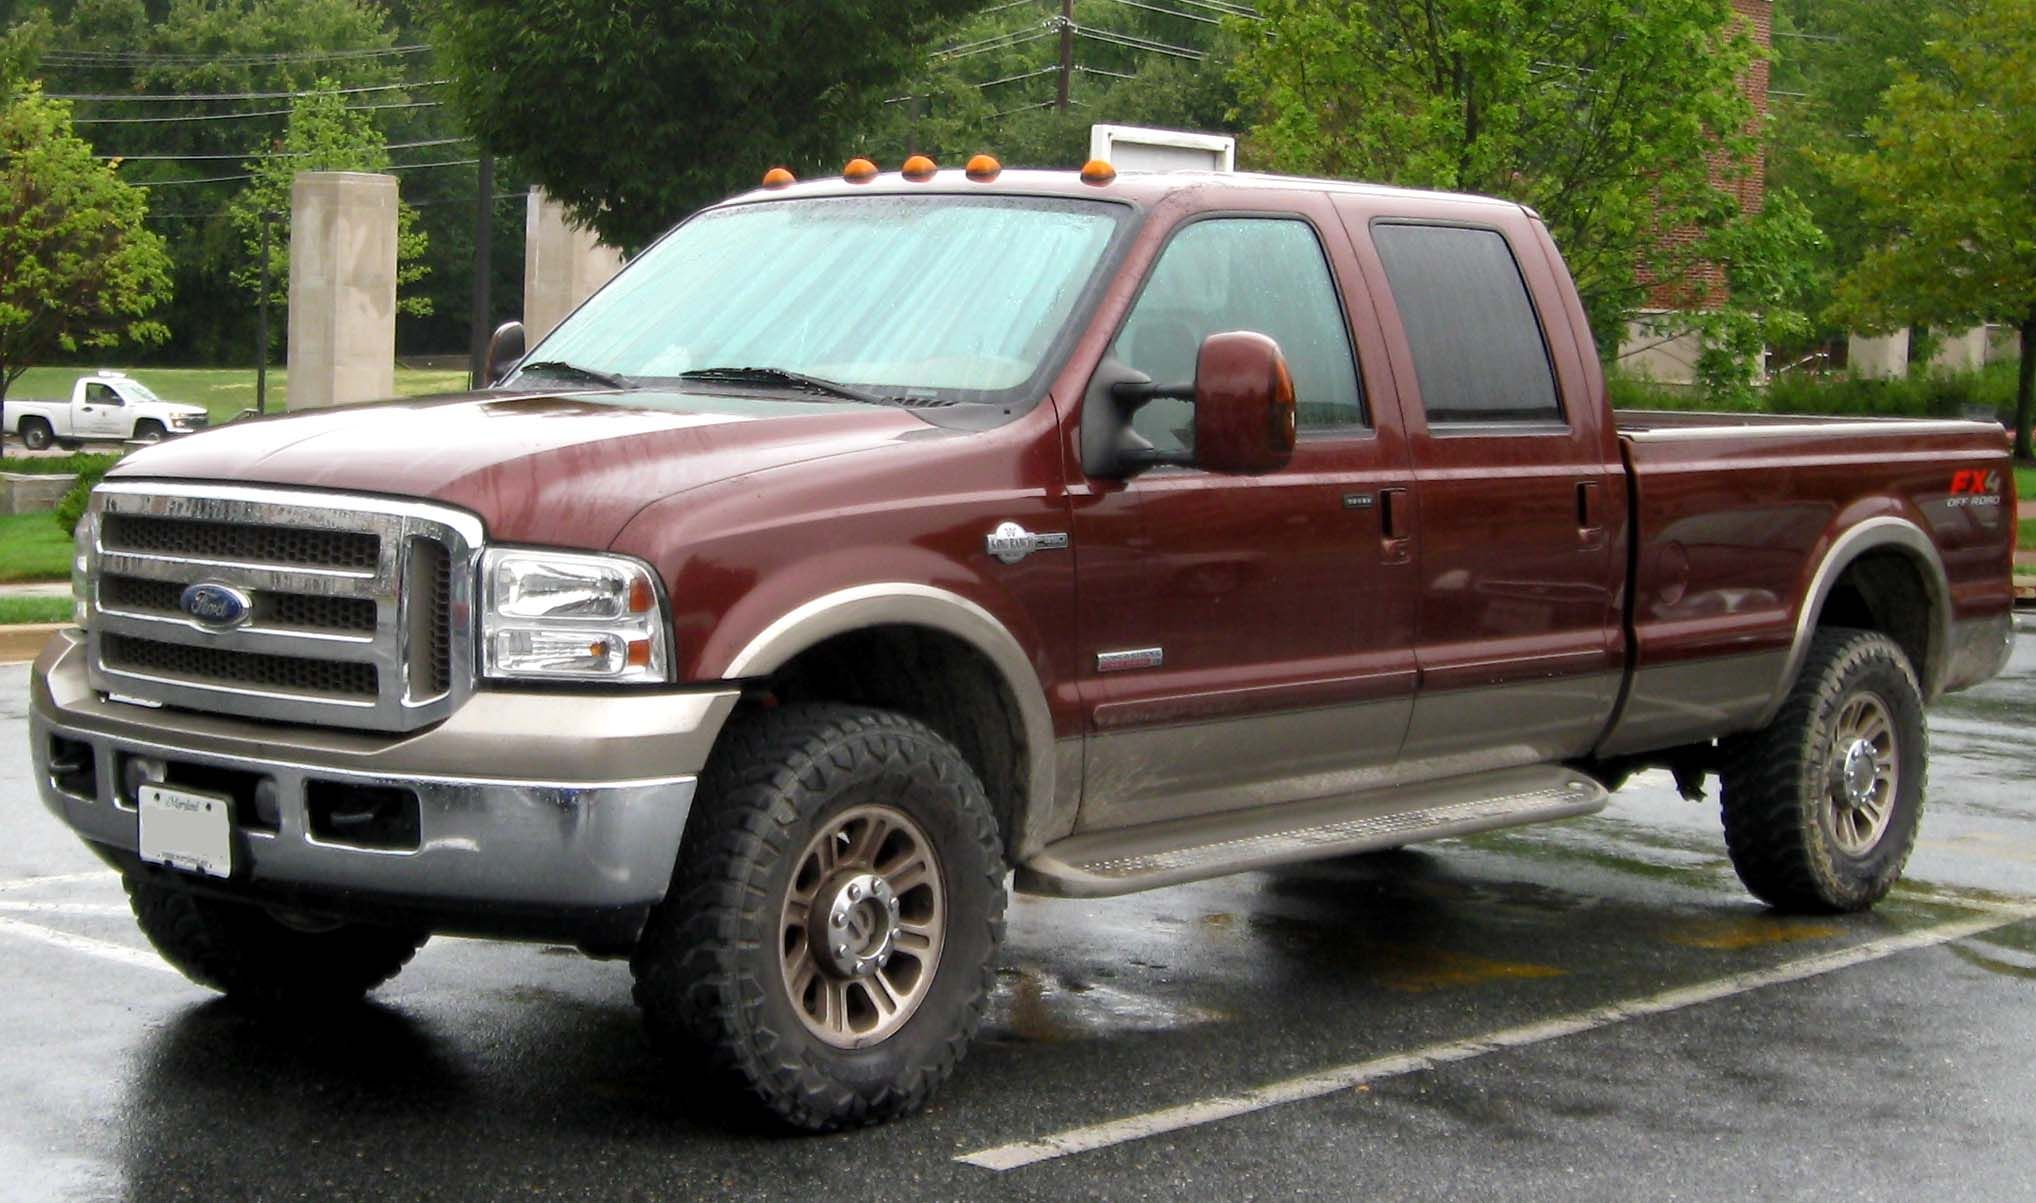 medium resolution of 2002 ford f250 v10 super cab mine was a teal blue with tinted windows this thing could pull a small town if you had a good enough chain 9mpg